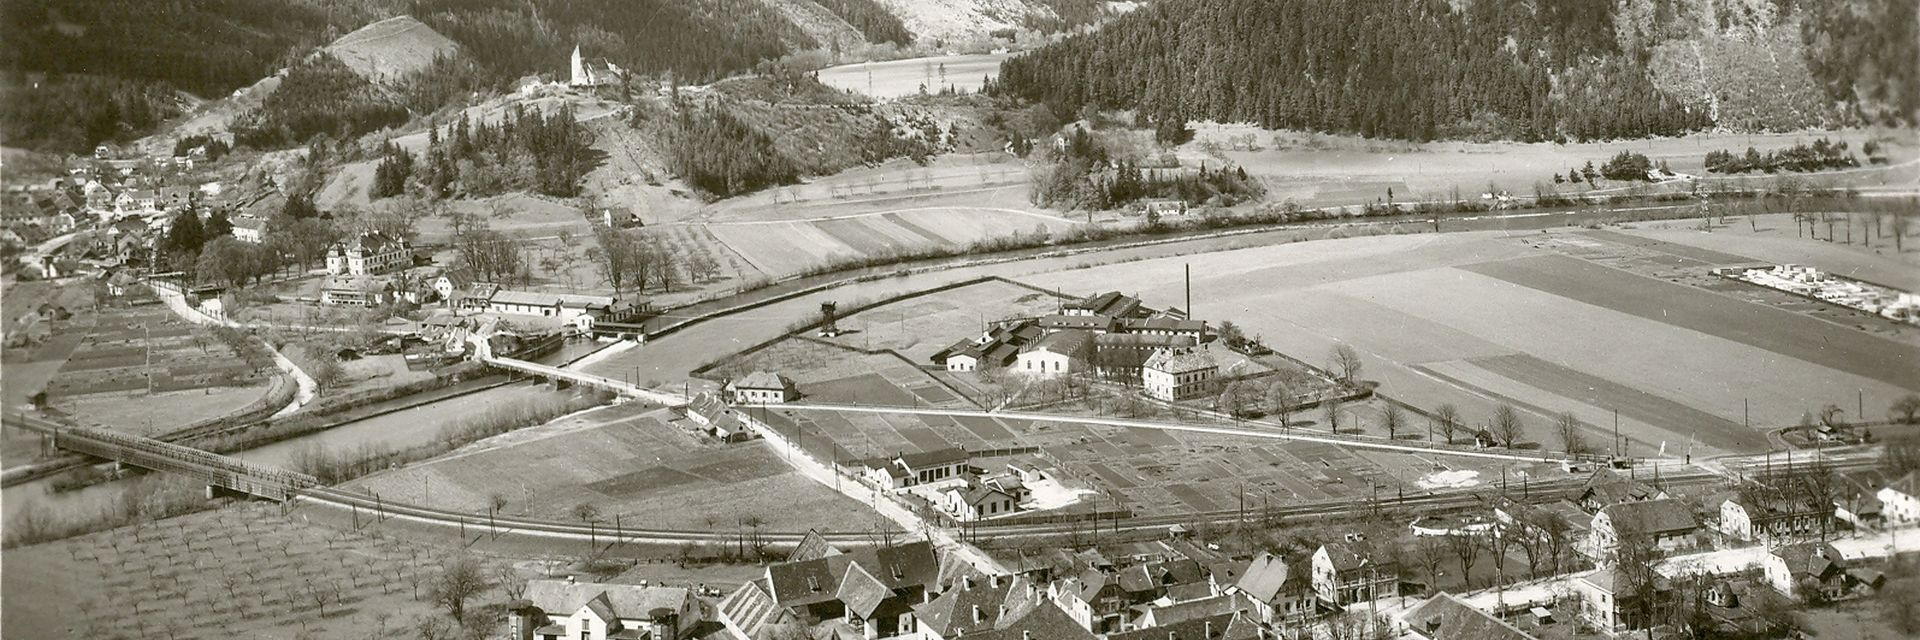 GIPRO insulators in Peggau, historical photo